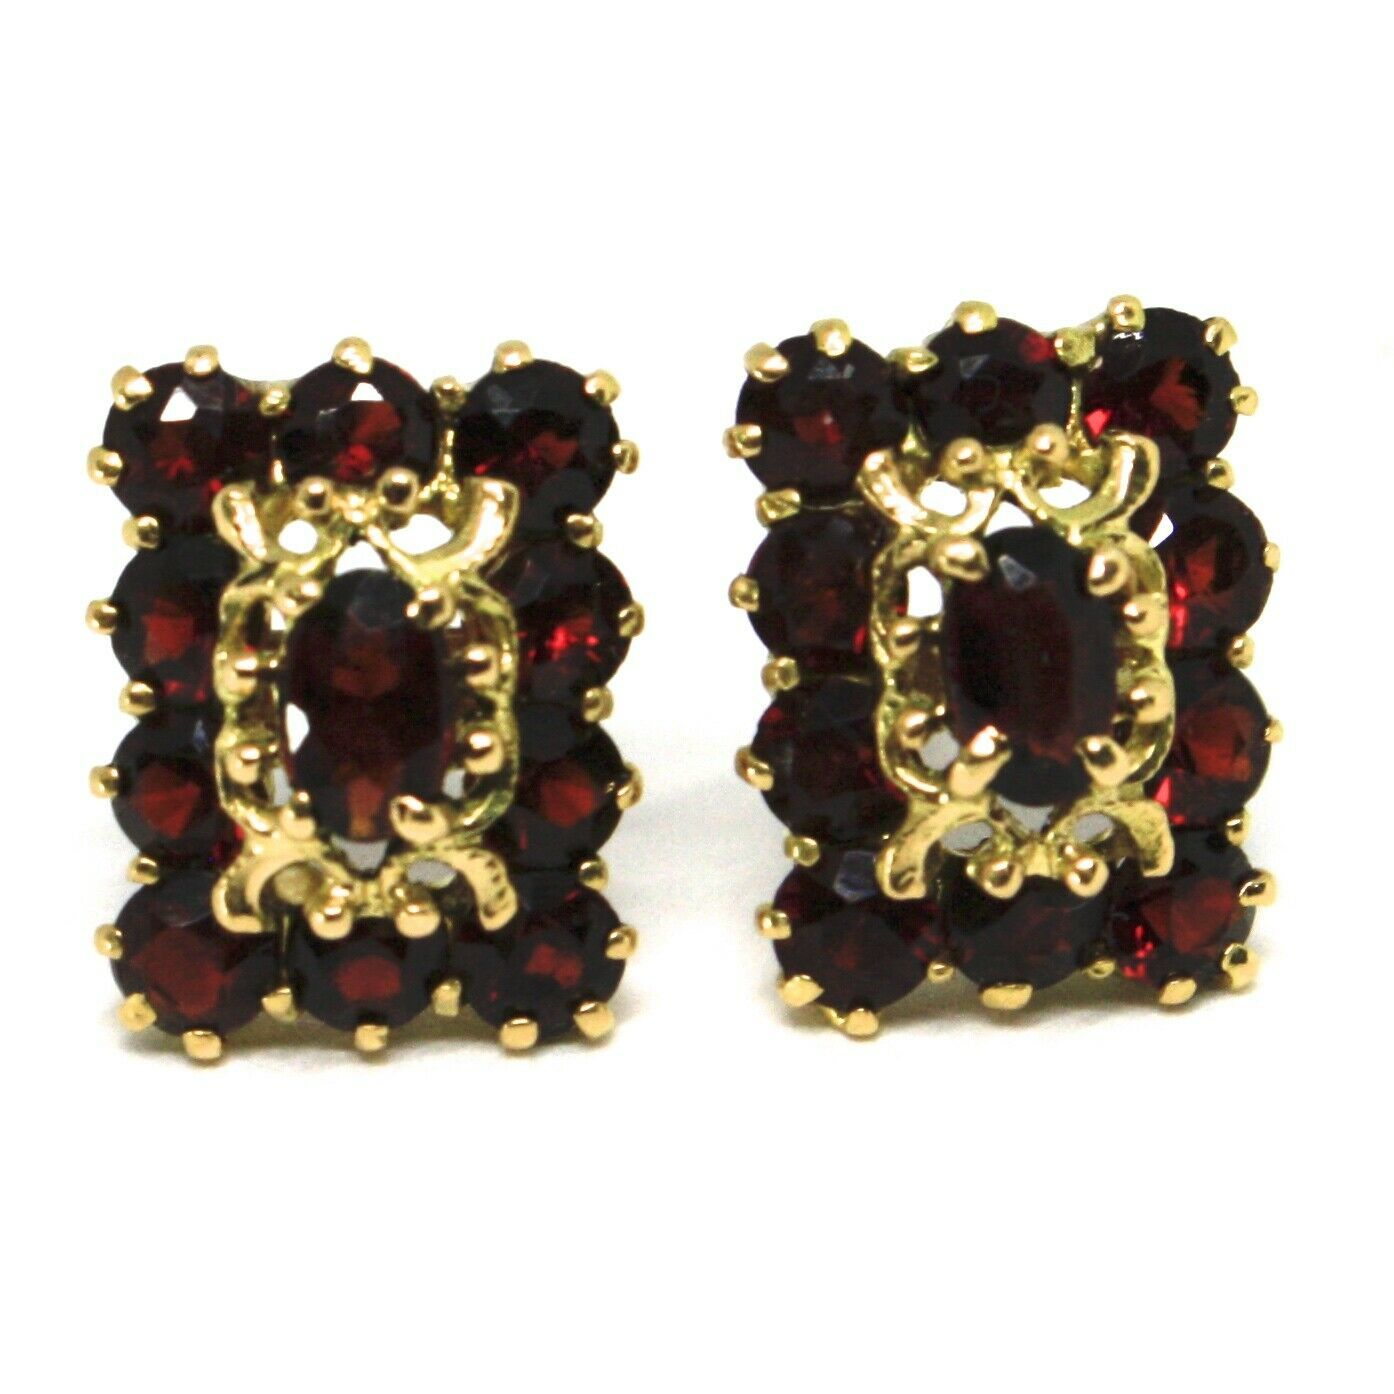 SOLID 18K YELLOW GOLD EARRINGS, SQUARE WITH RED GARNET, LOBE, MADE IN ITALY